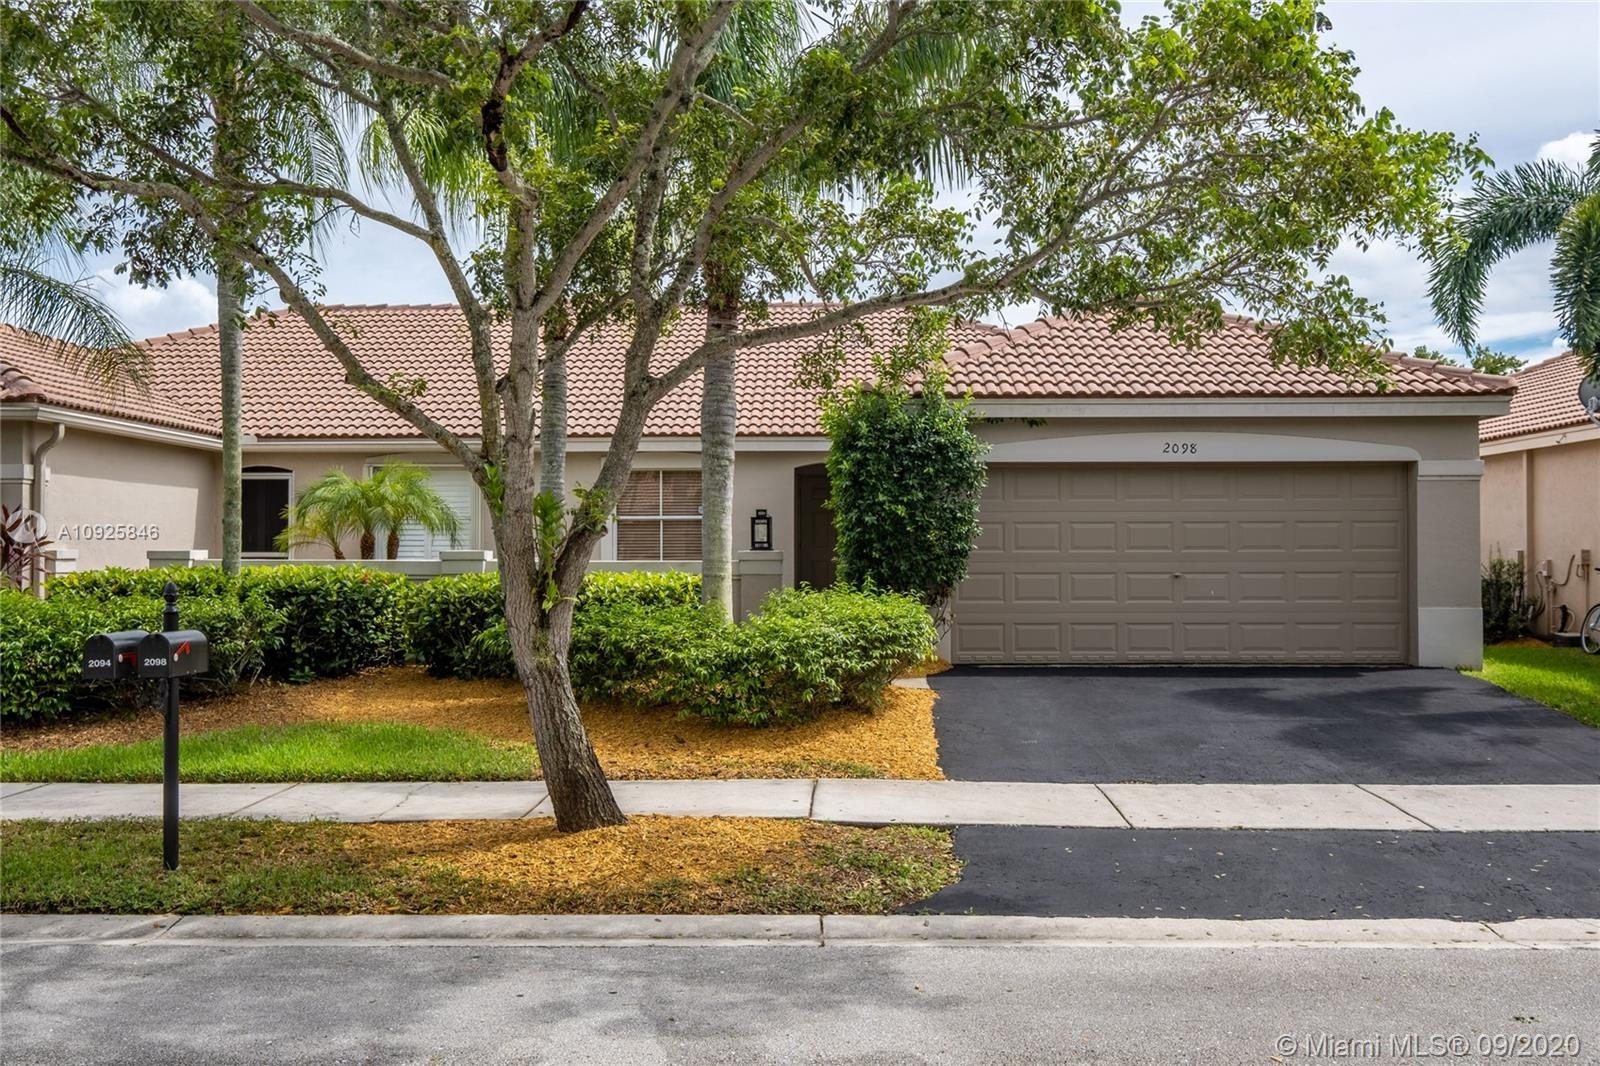 2098  Borealis Way  For Sale A10925846, FL